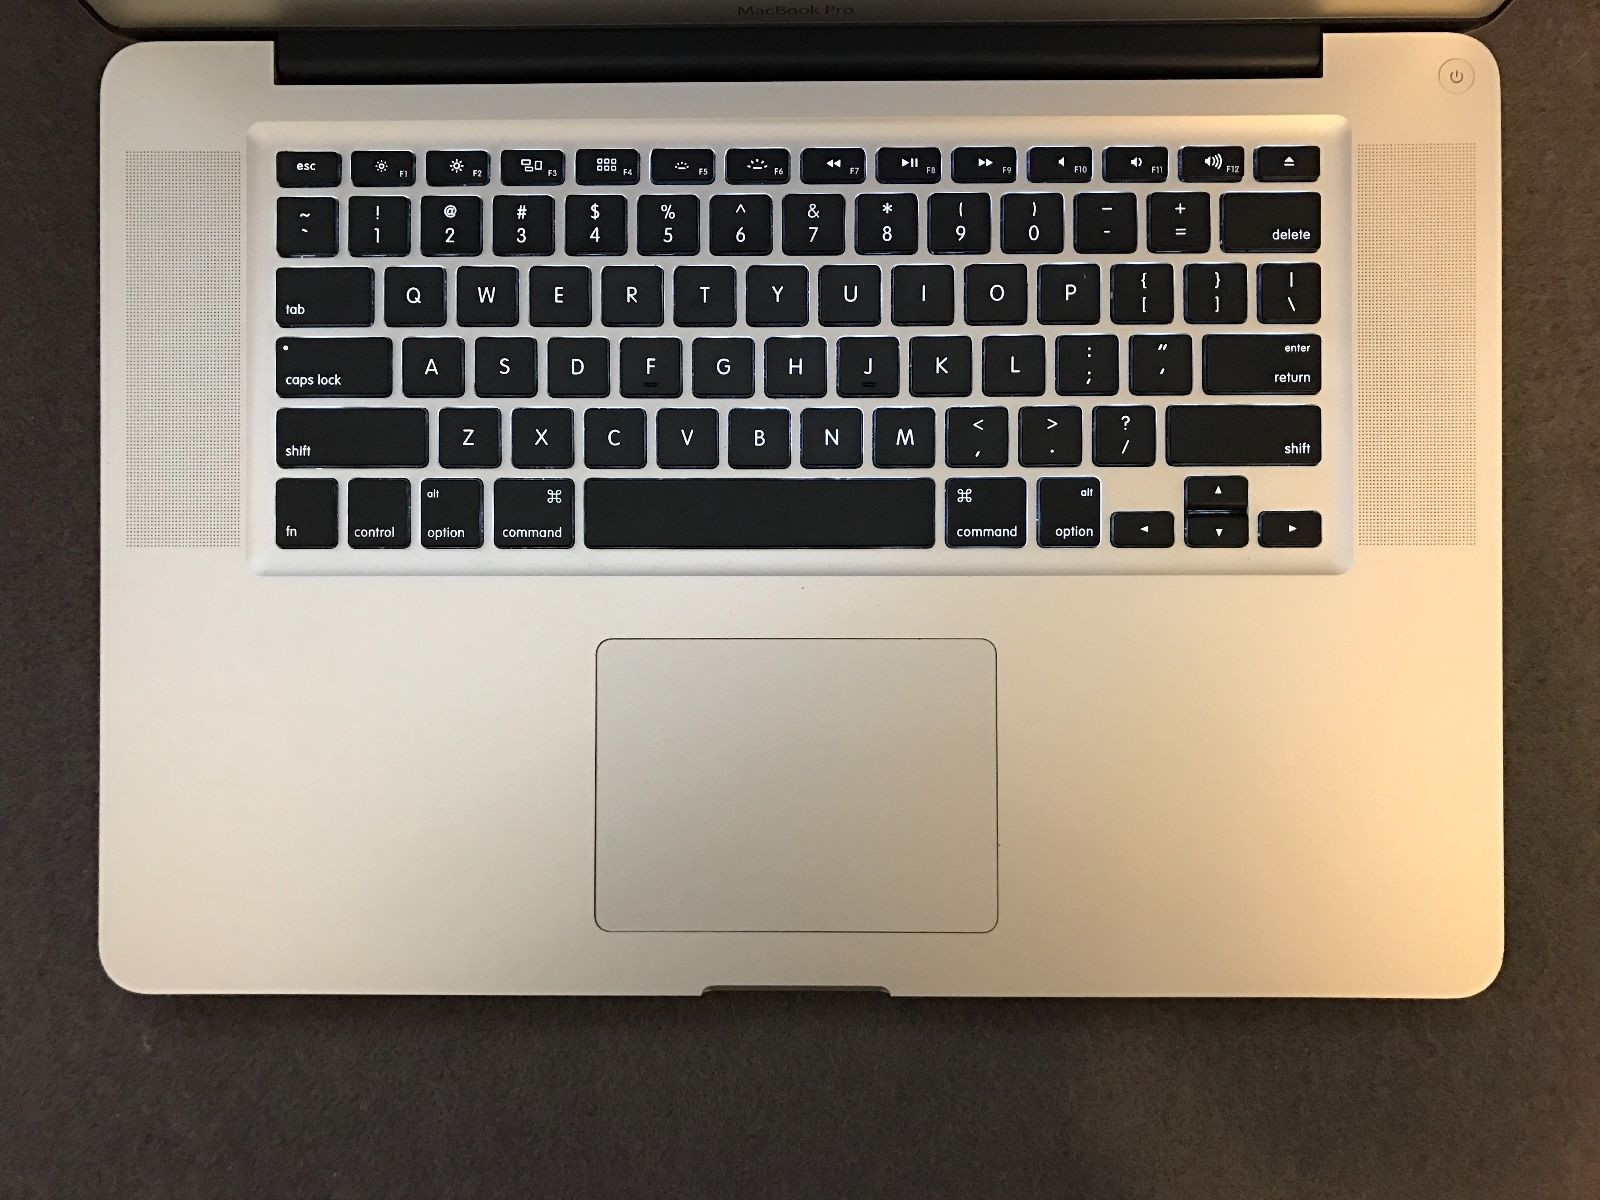 MacBook Pro mid 2012 BTO/CTO Core i7 (I7-3820QM) 2.7 GHz